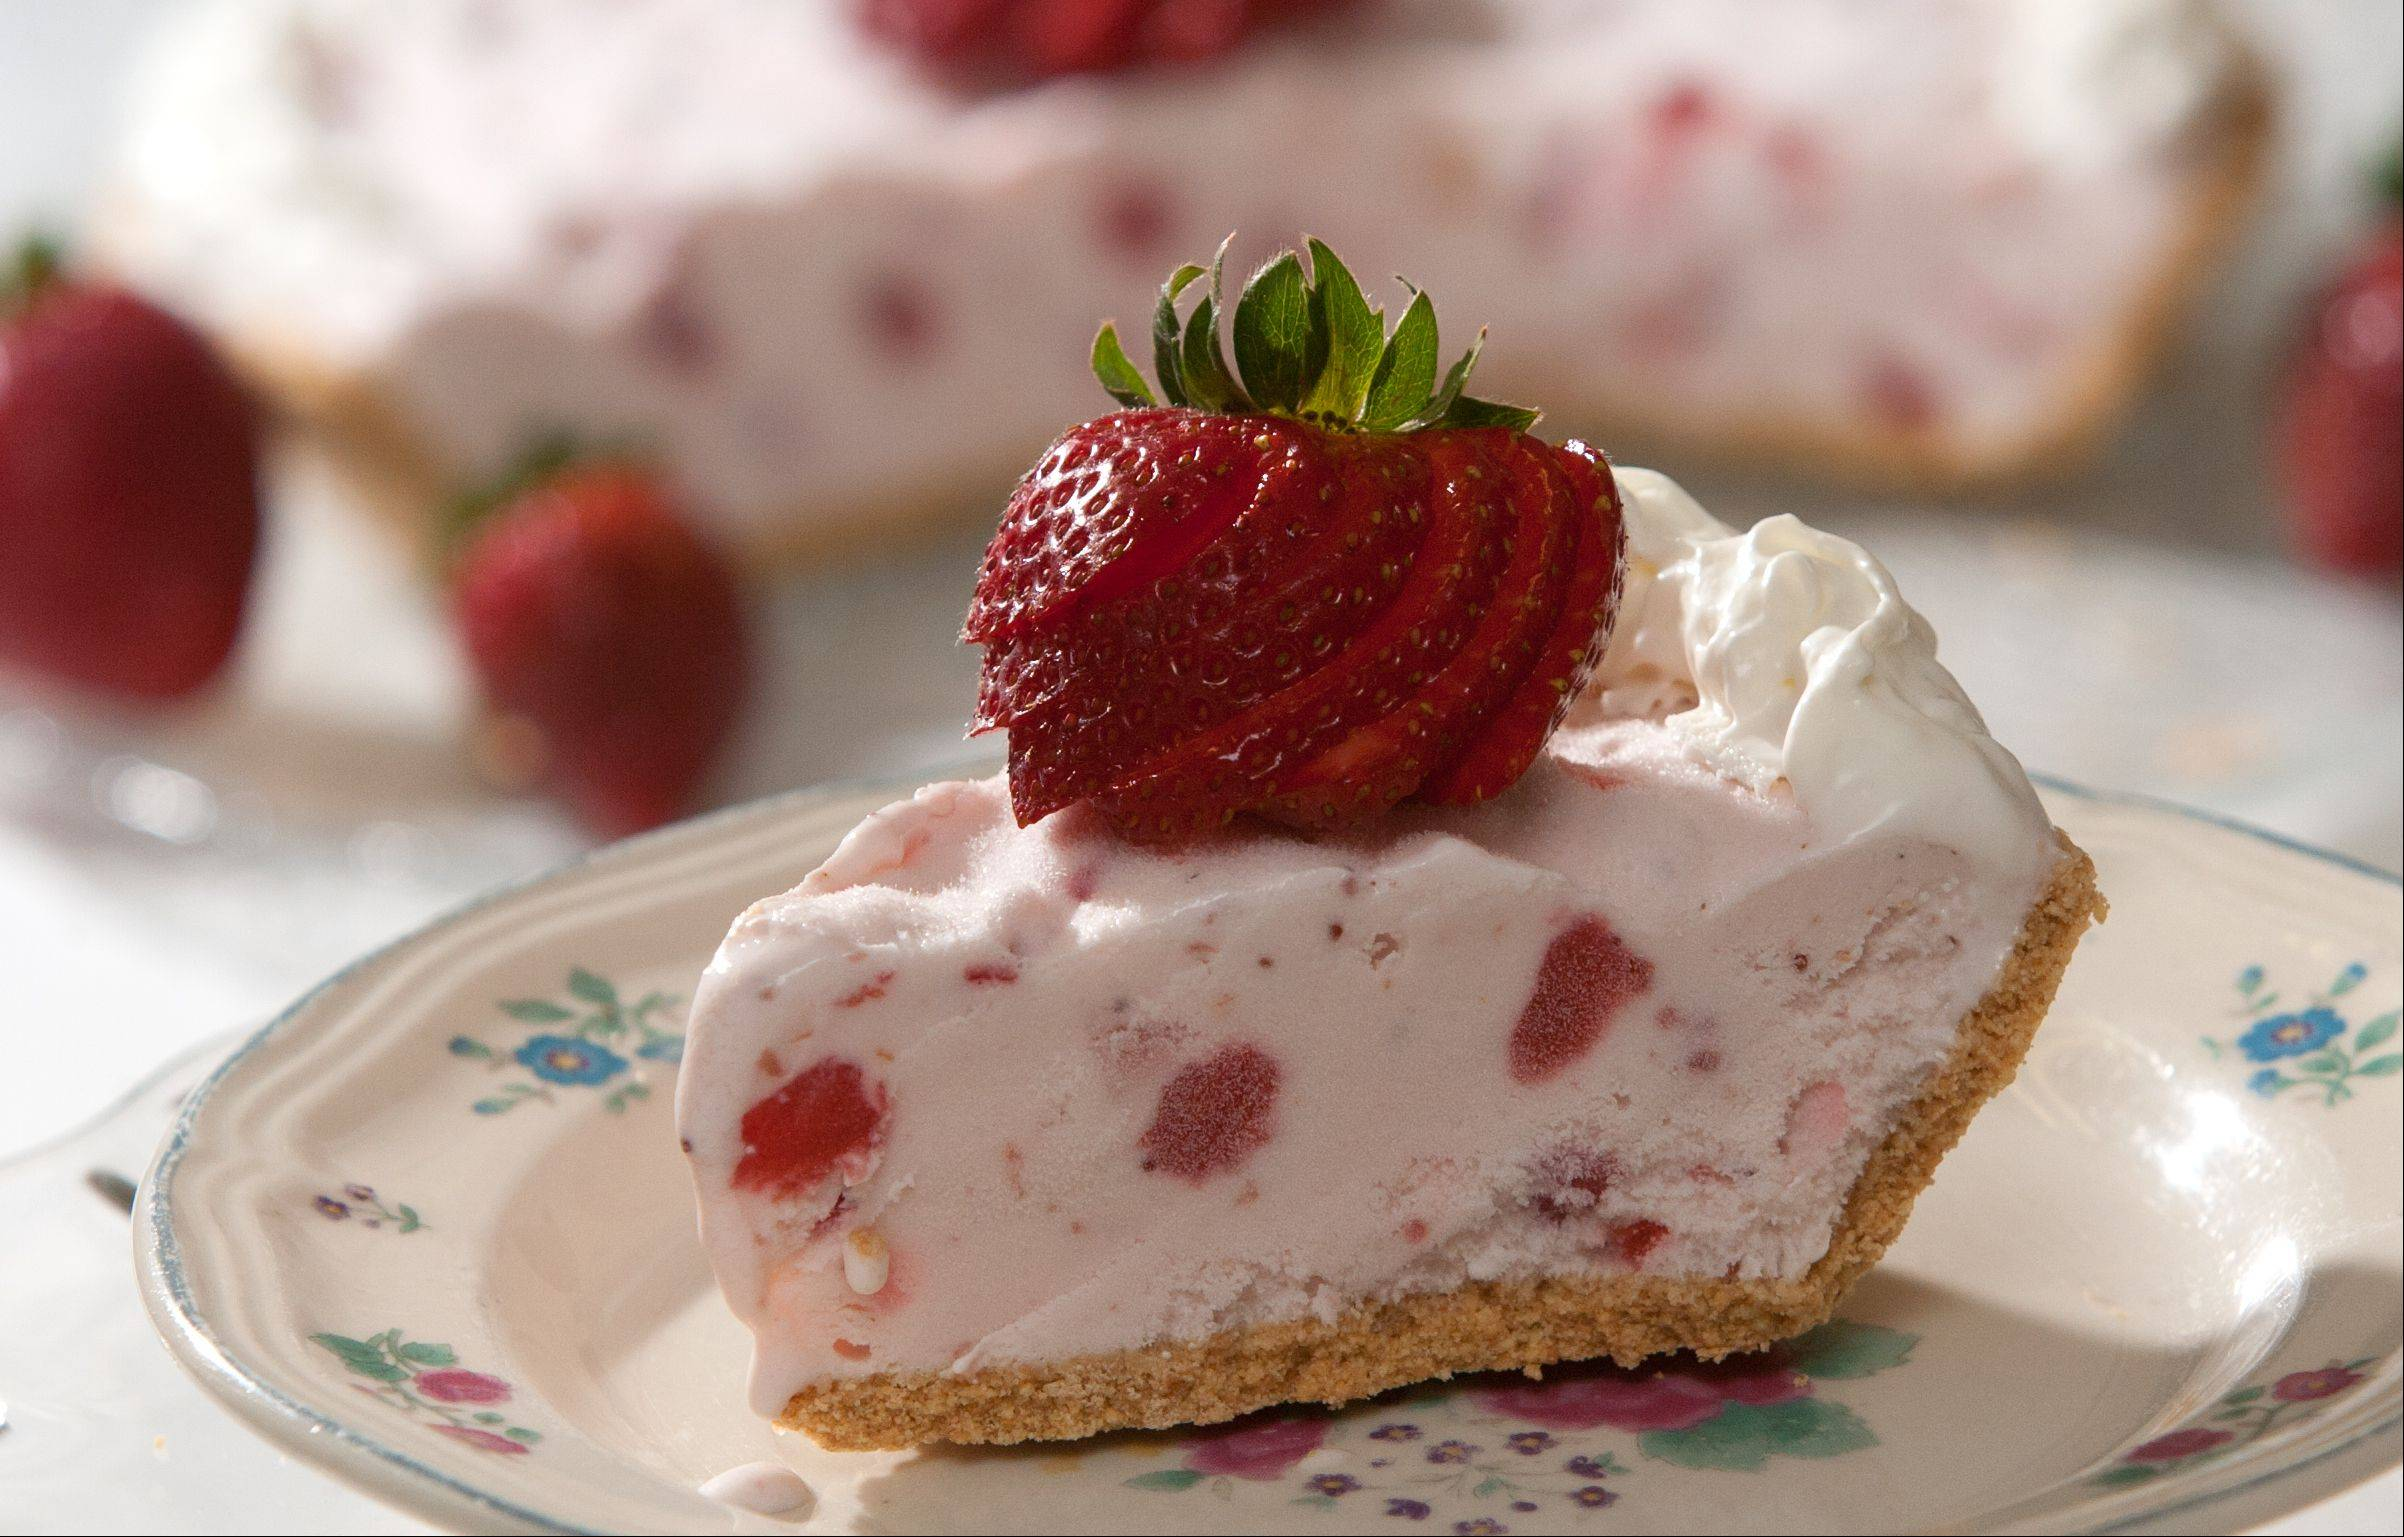 Greek yogurt tames the sugar in Annie Overboe's strawberry ice cream pie.